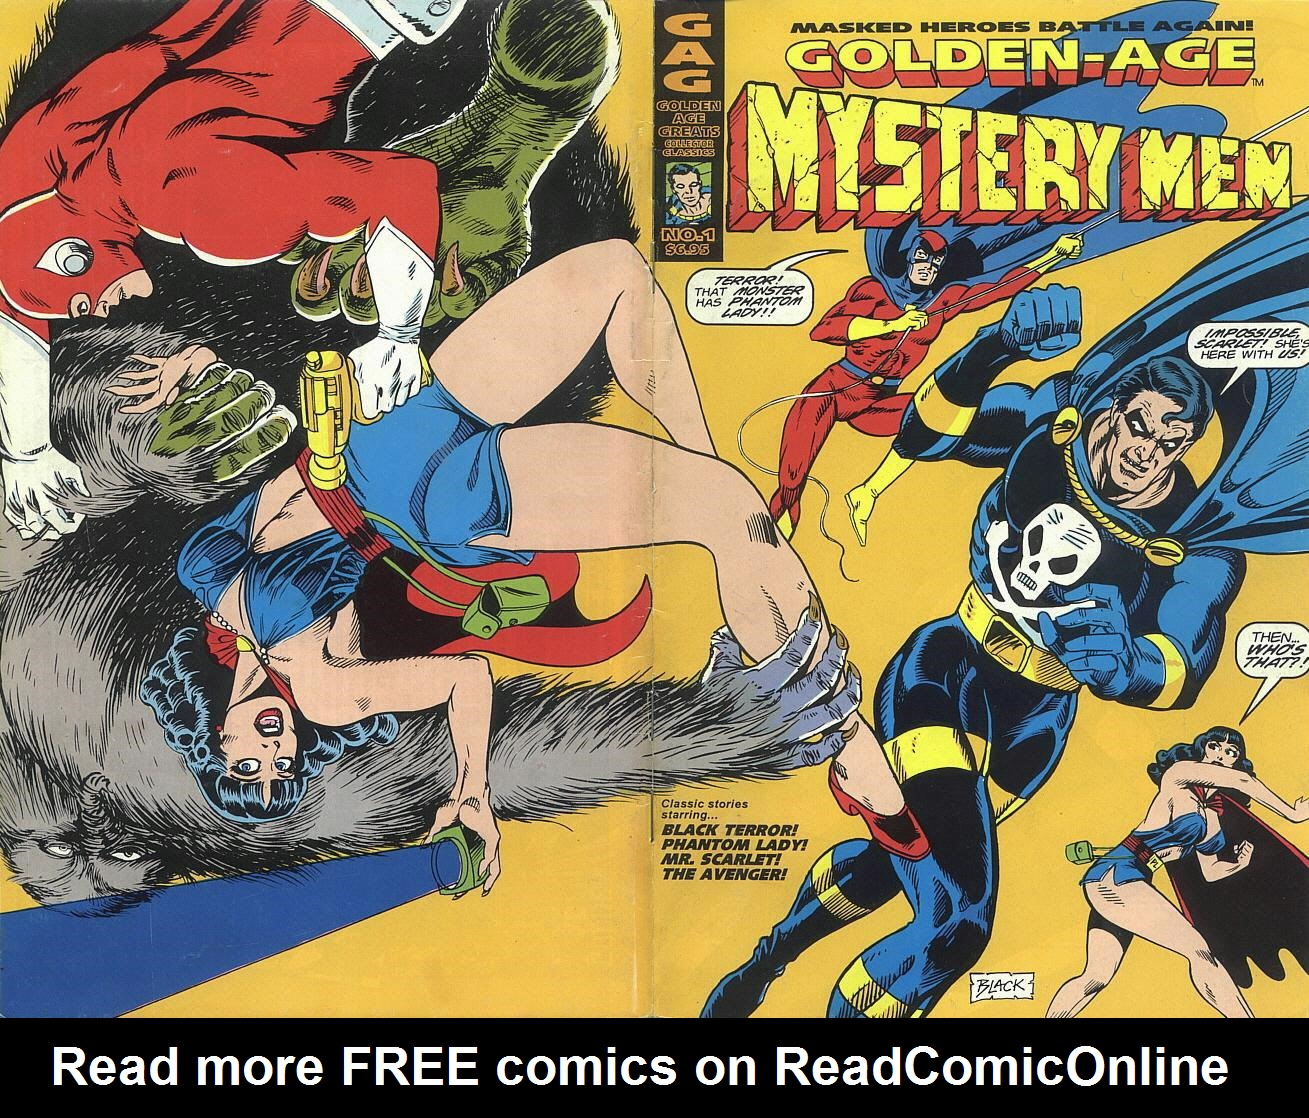 Read online Golden-Age Men of Mystery comic -  Issue #1 - 12